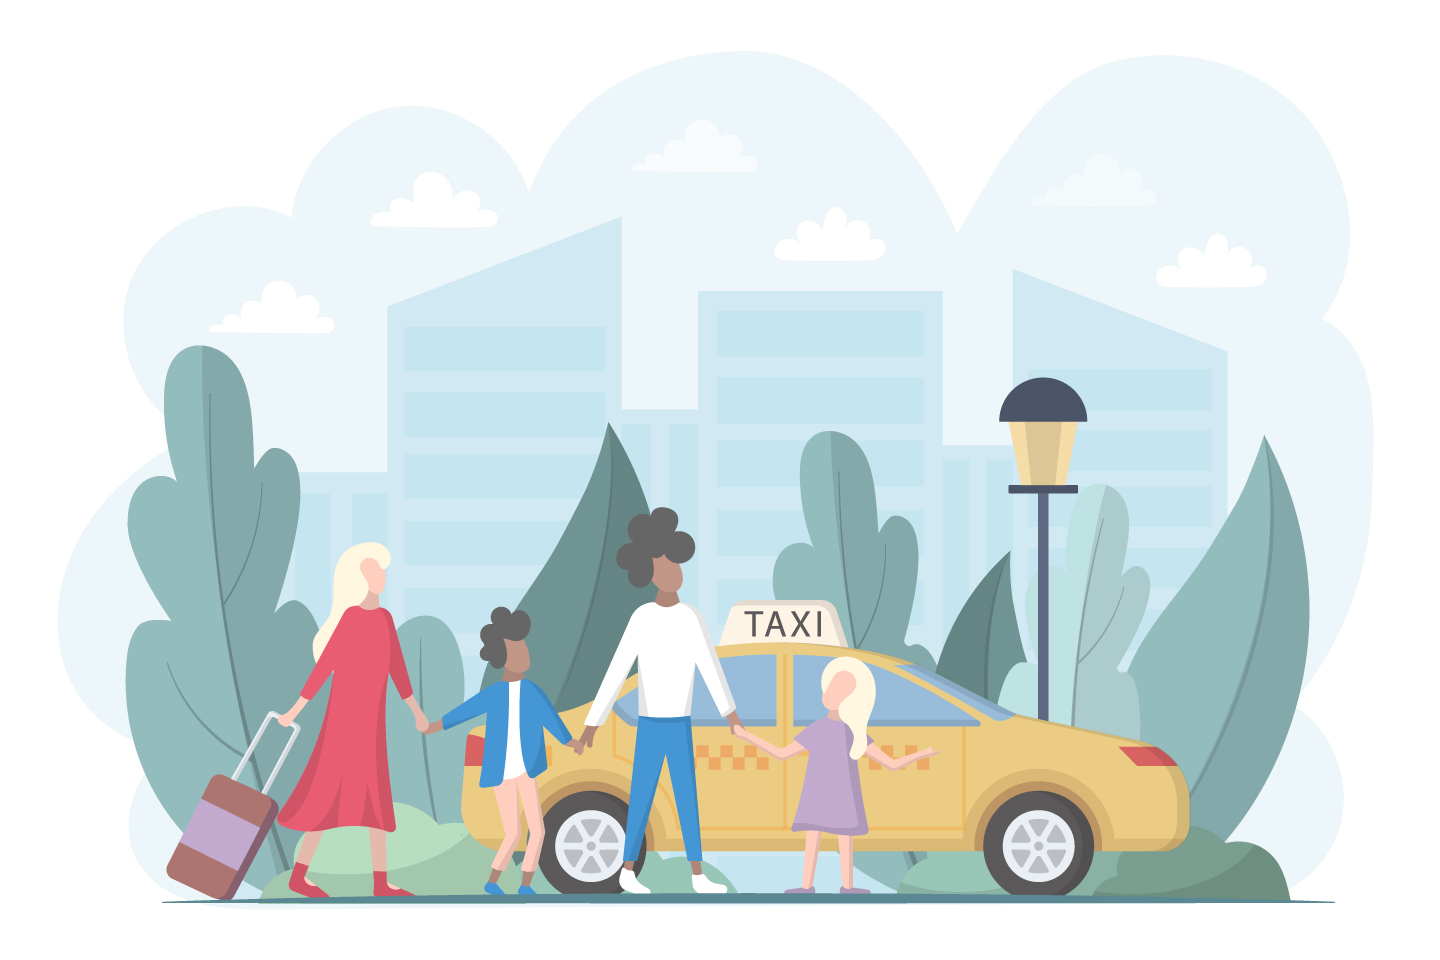 Family With Children Goes to a Taxi Illustration